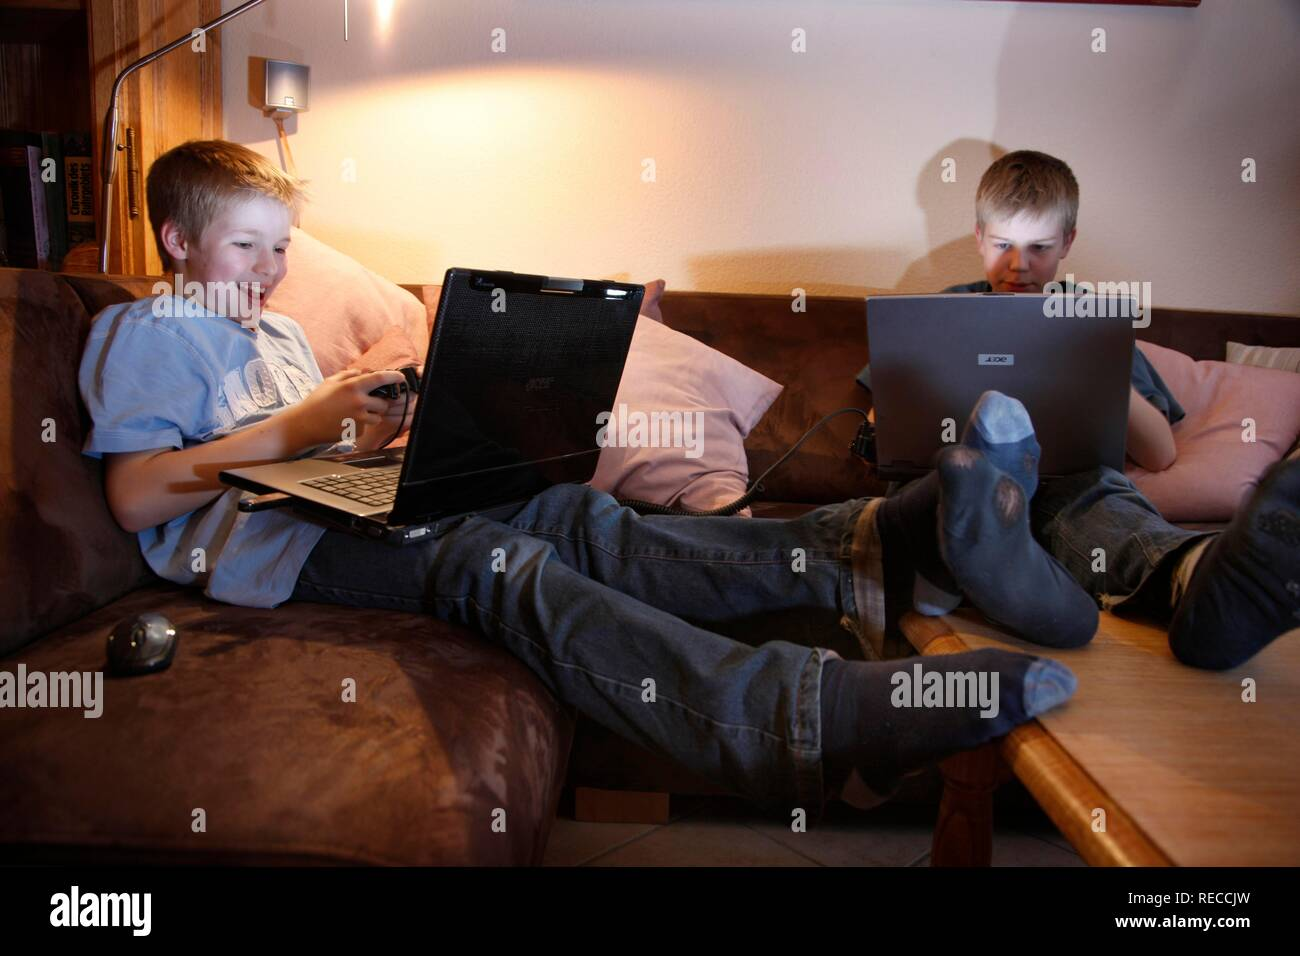 Brothers, 11 and 13 years old, with laptop computer in the living room, playing a car racing computer game on two computers Stock Photo